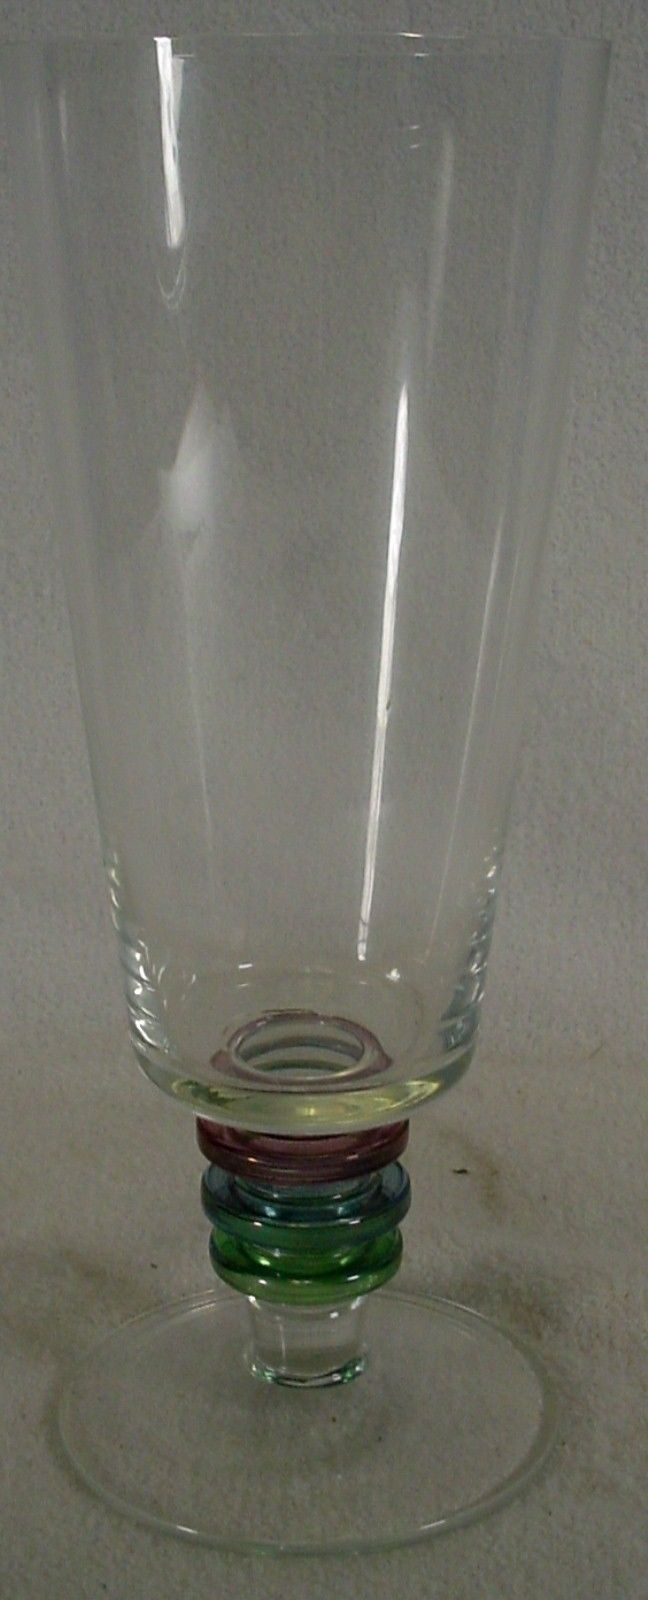 BLOCK crystal CARNIVAL pattern ICED TEA Glass or Goblet 7-3/4